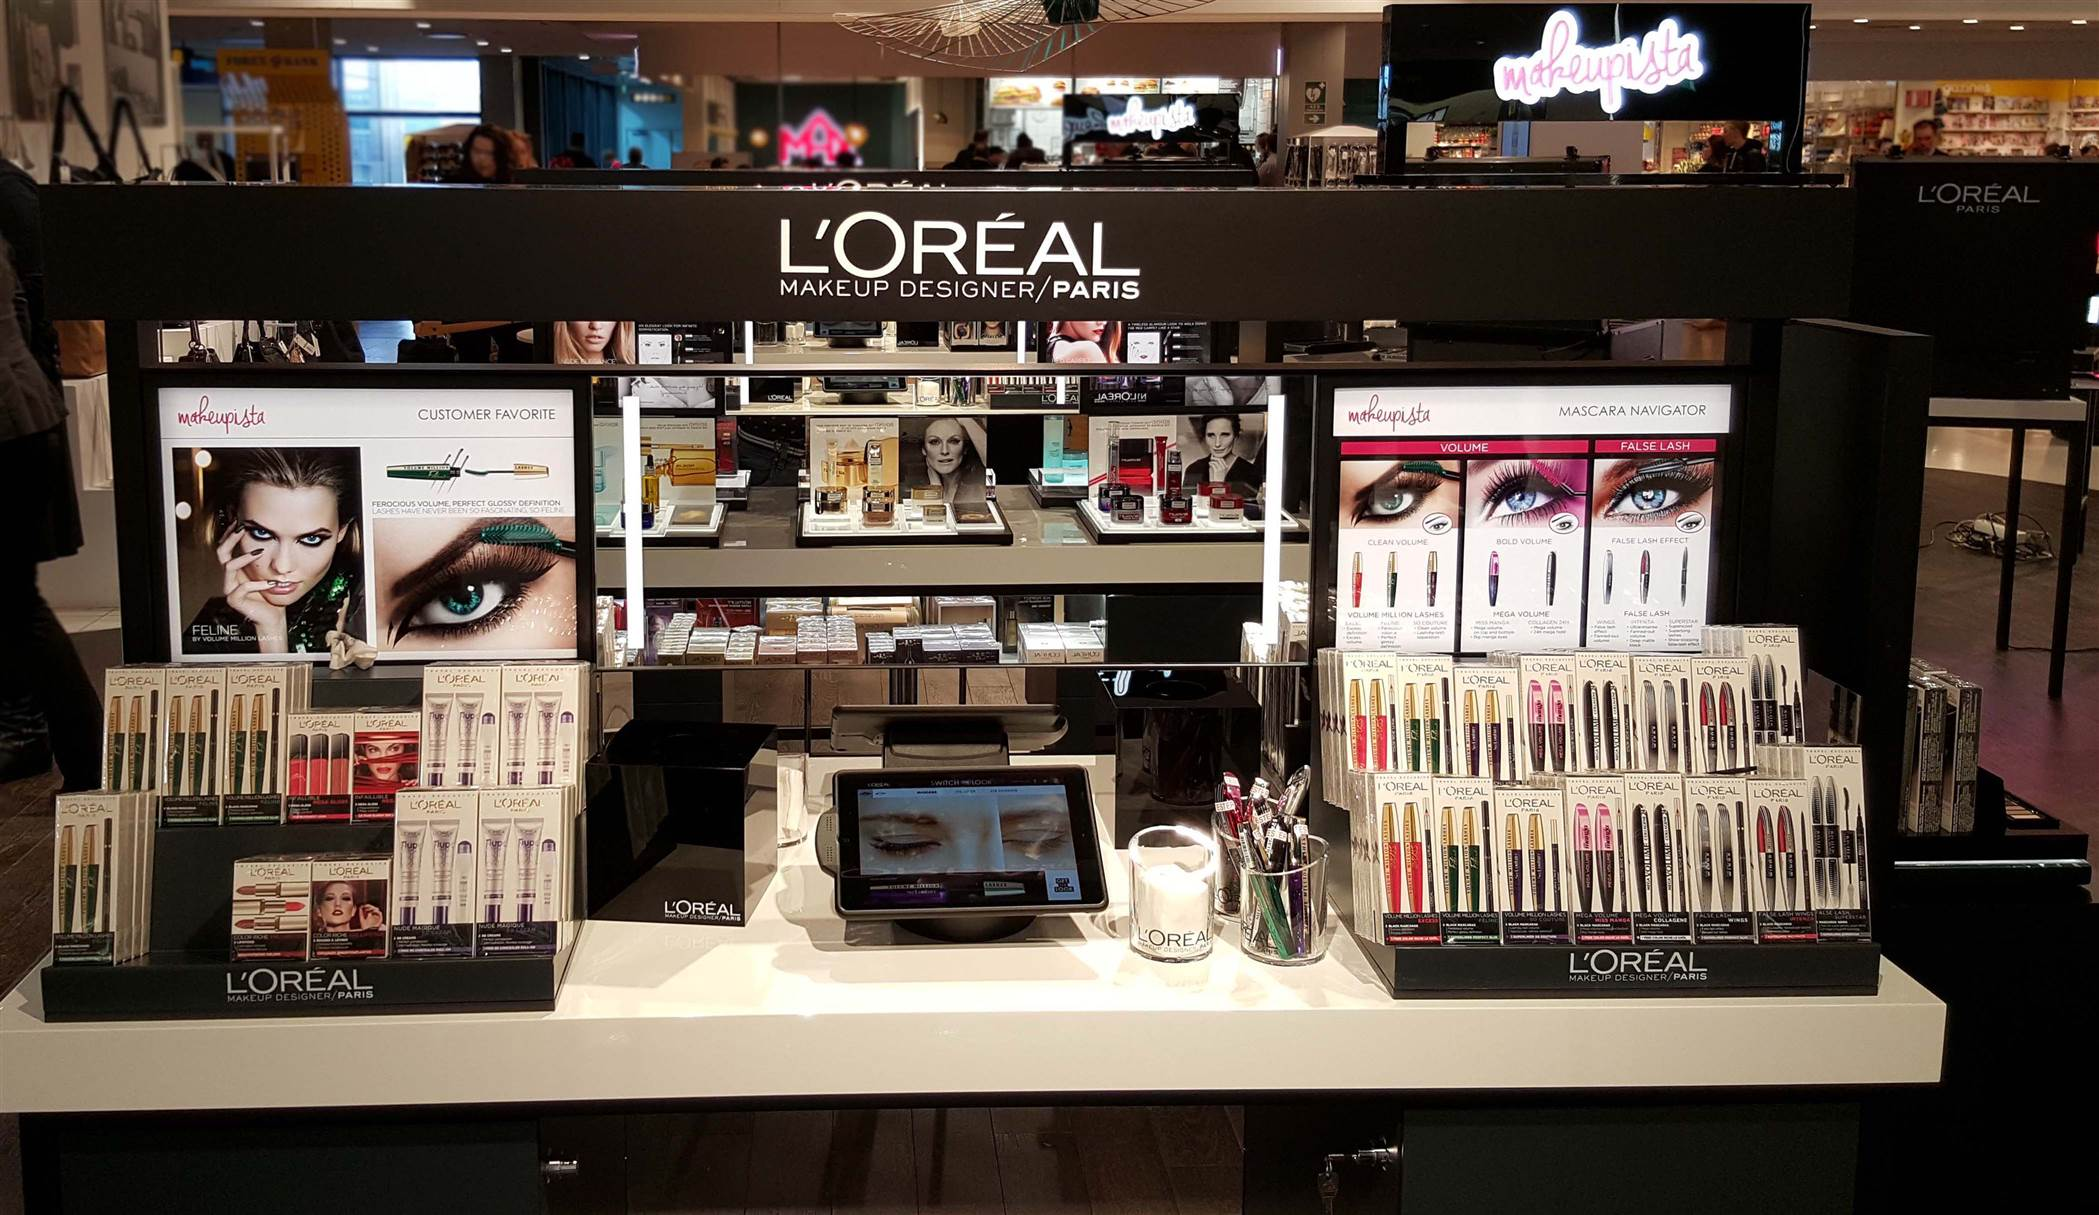 L'Oreal Asia Pacific Massive Sales Record, Leaving Behind Its North America Business!